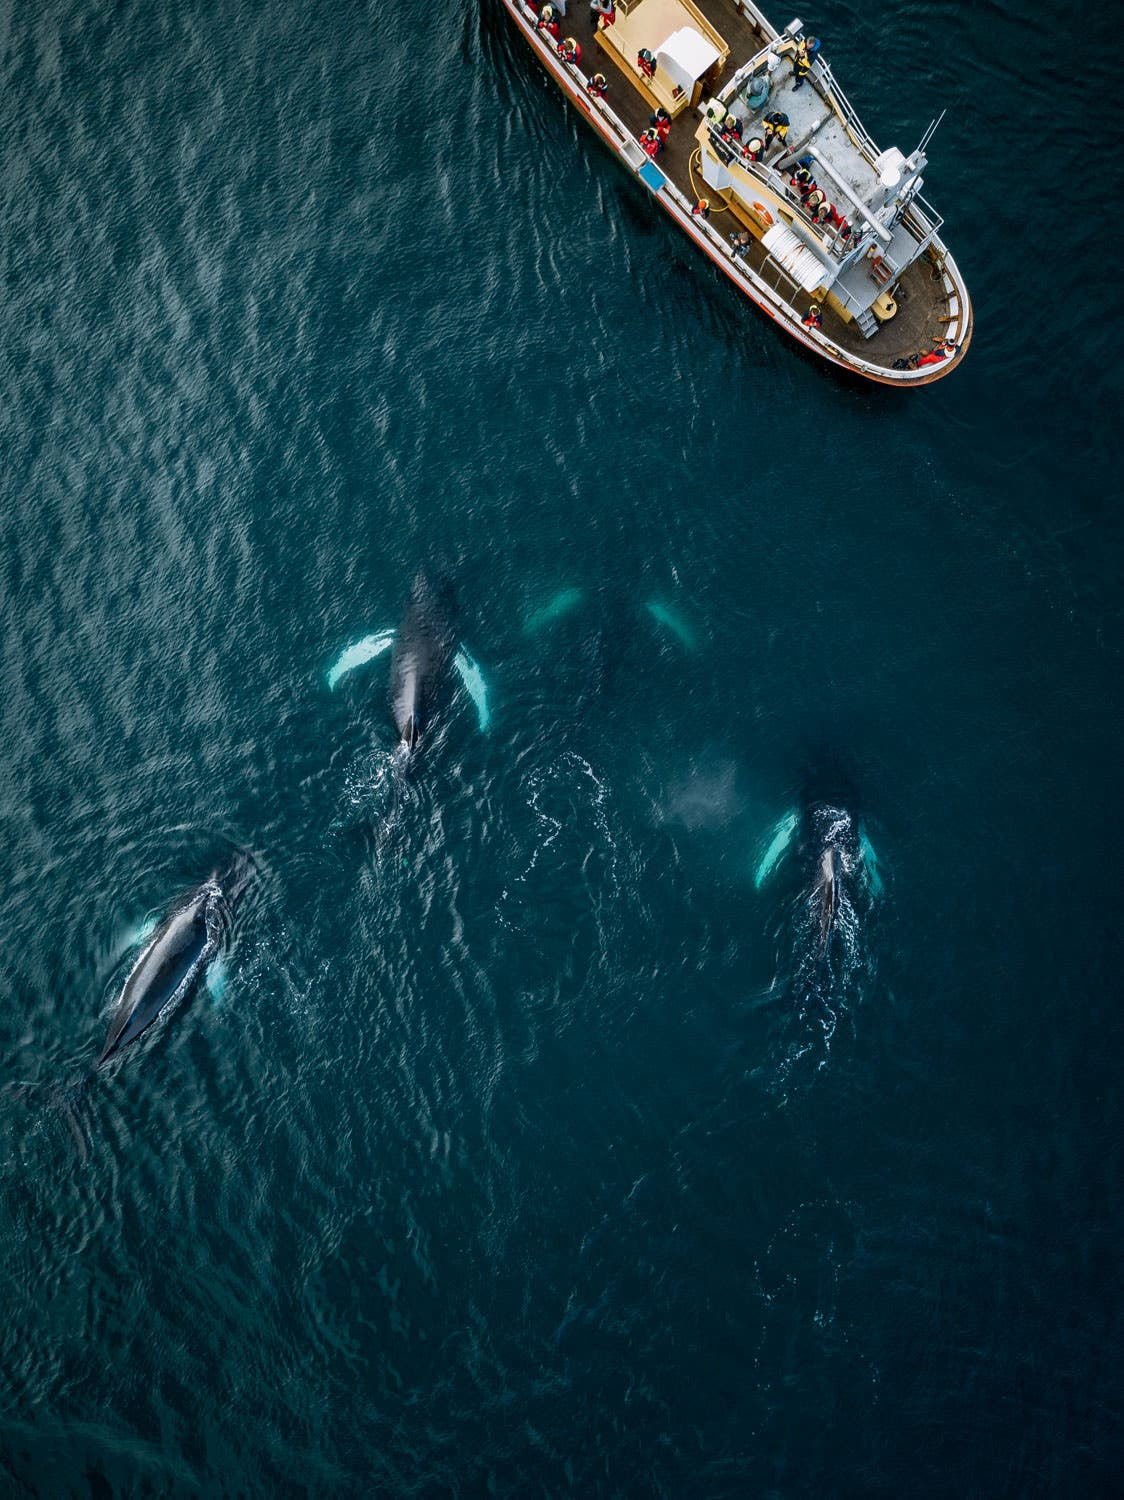 Michael Schauer Shares a Whale Watching Story with Gorgeous Aerial Photos